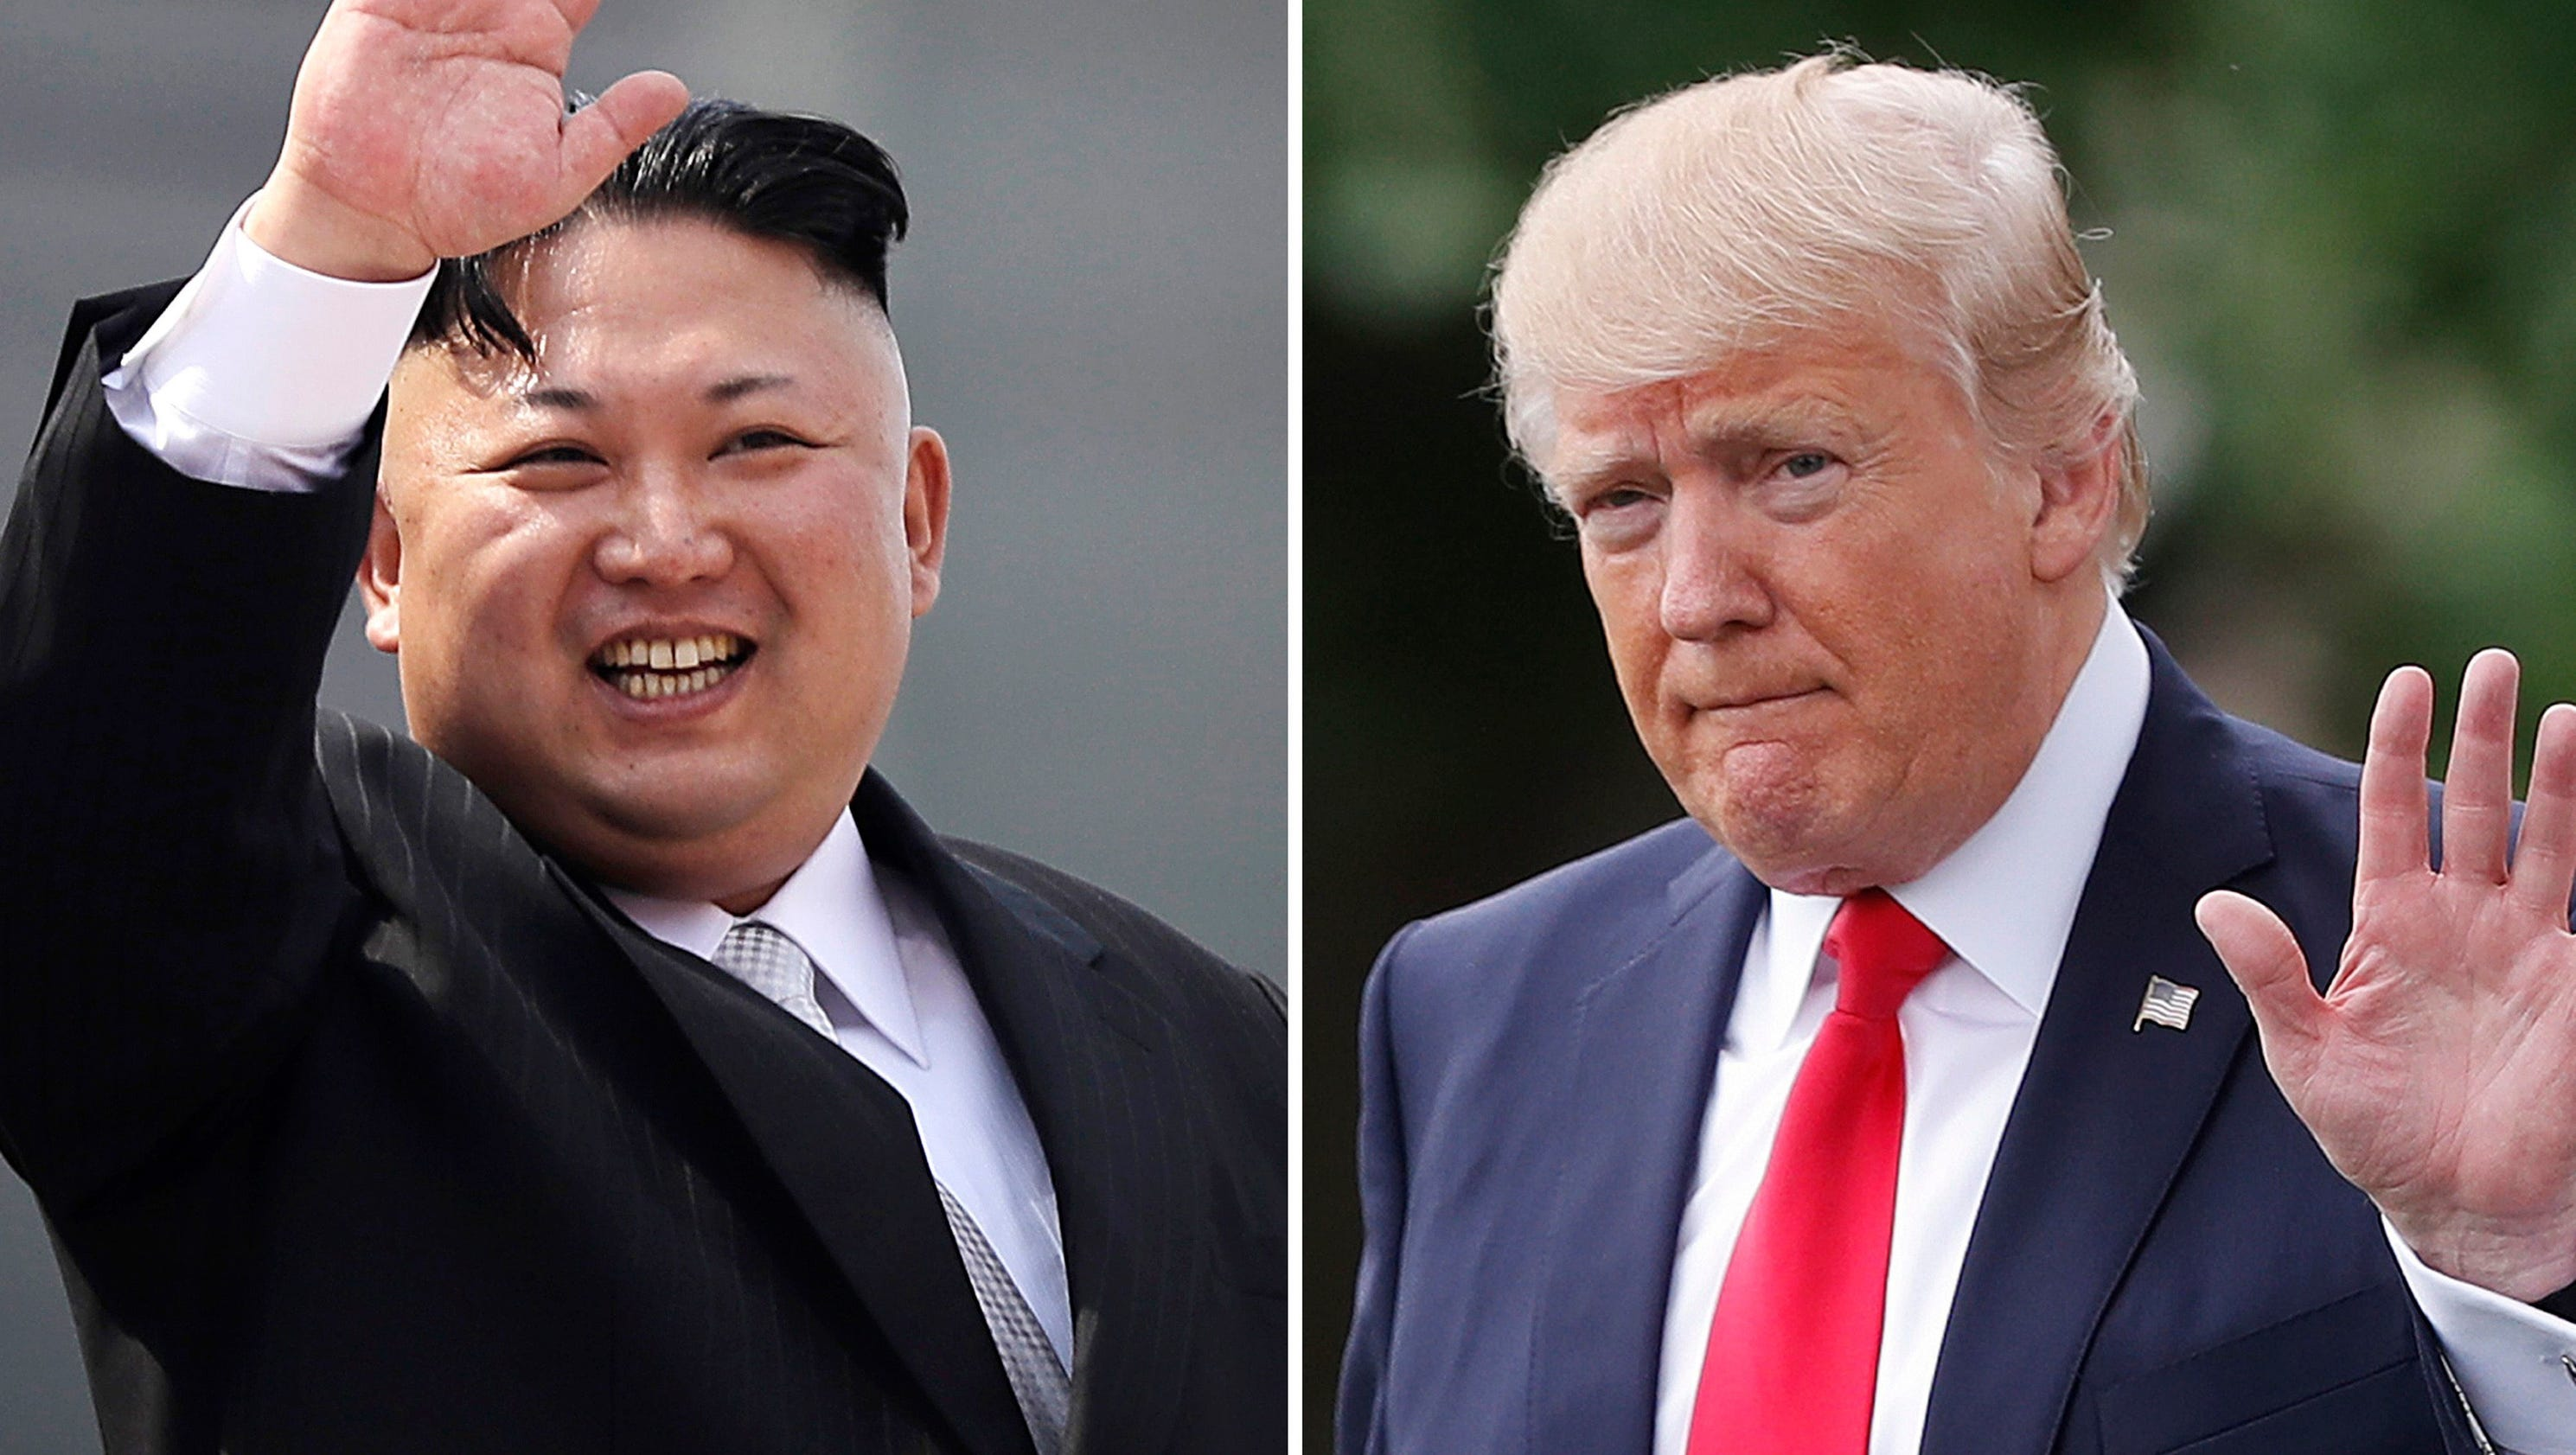 Asians wonder who is more dangerous: President Trump or North Korean leader Kim Jong Un?